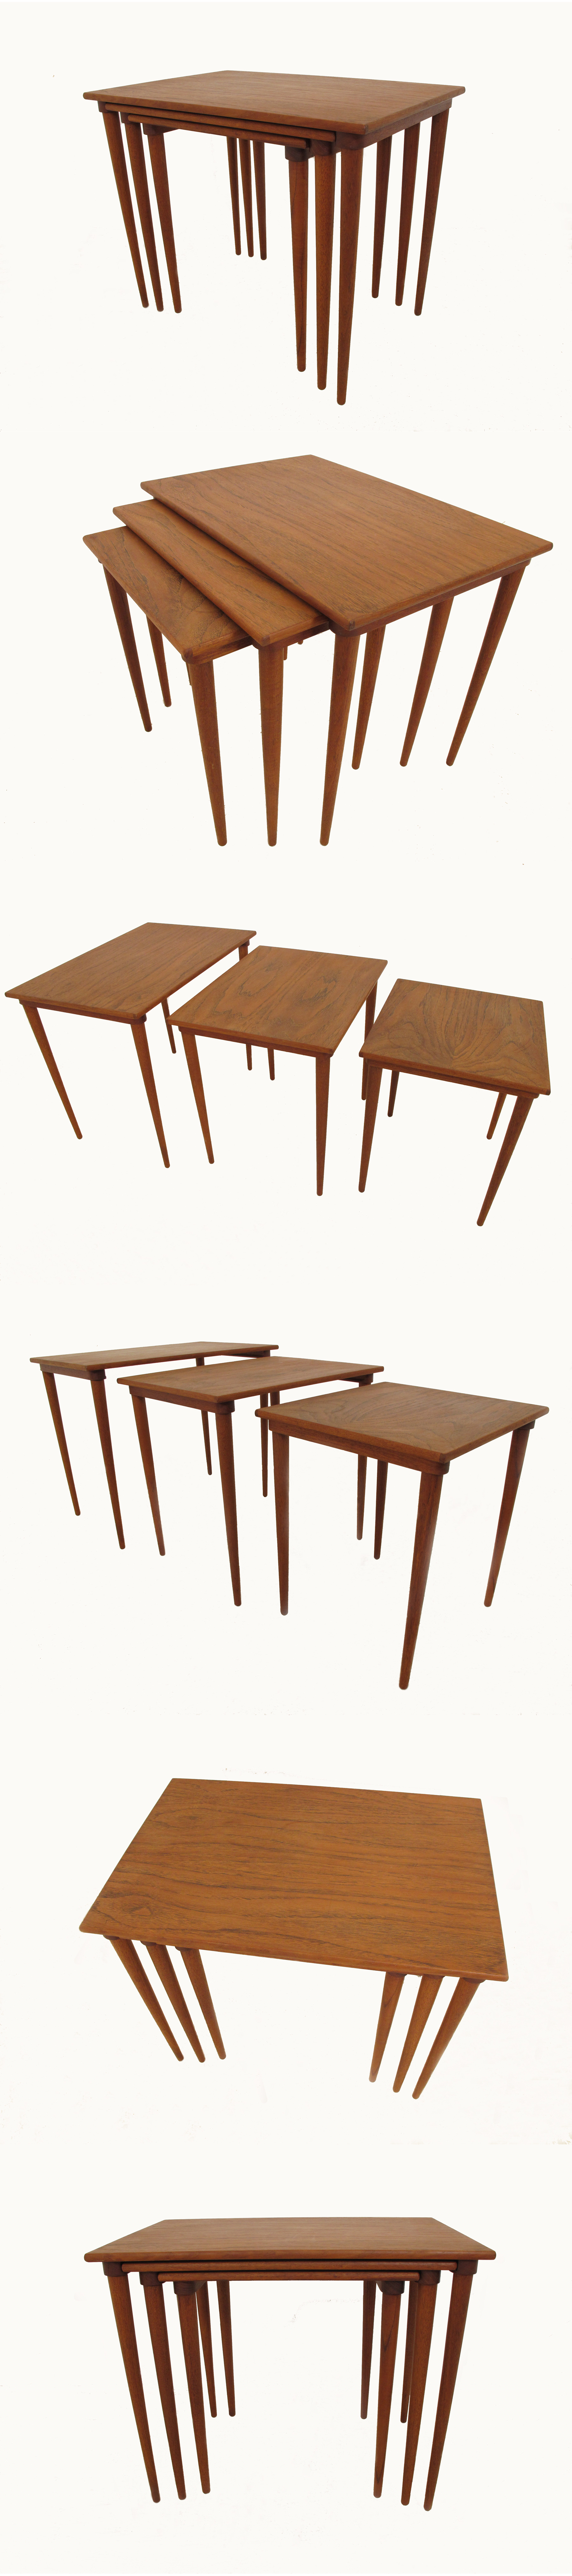 A teak nest of tables c1960s, by Bramin of Denmark.